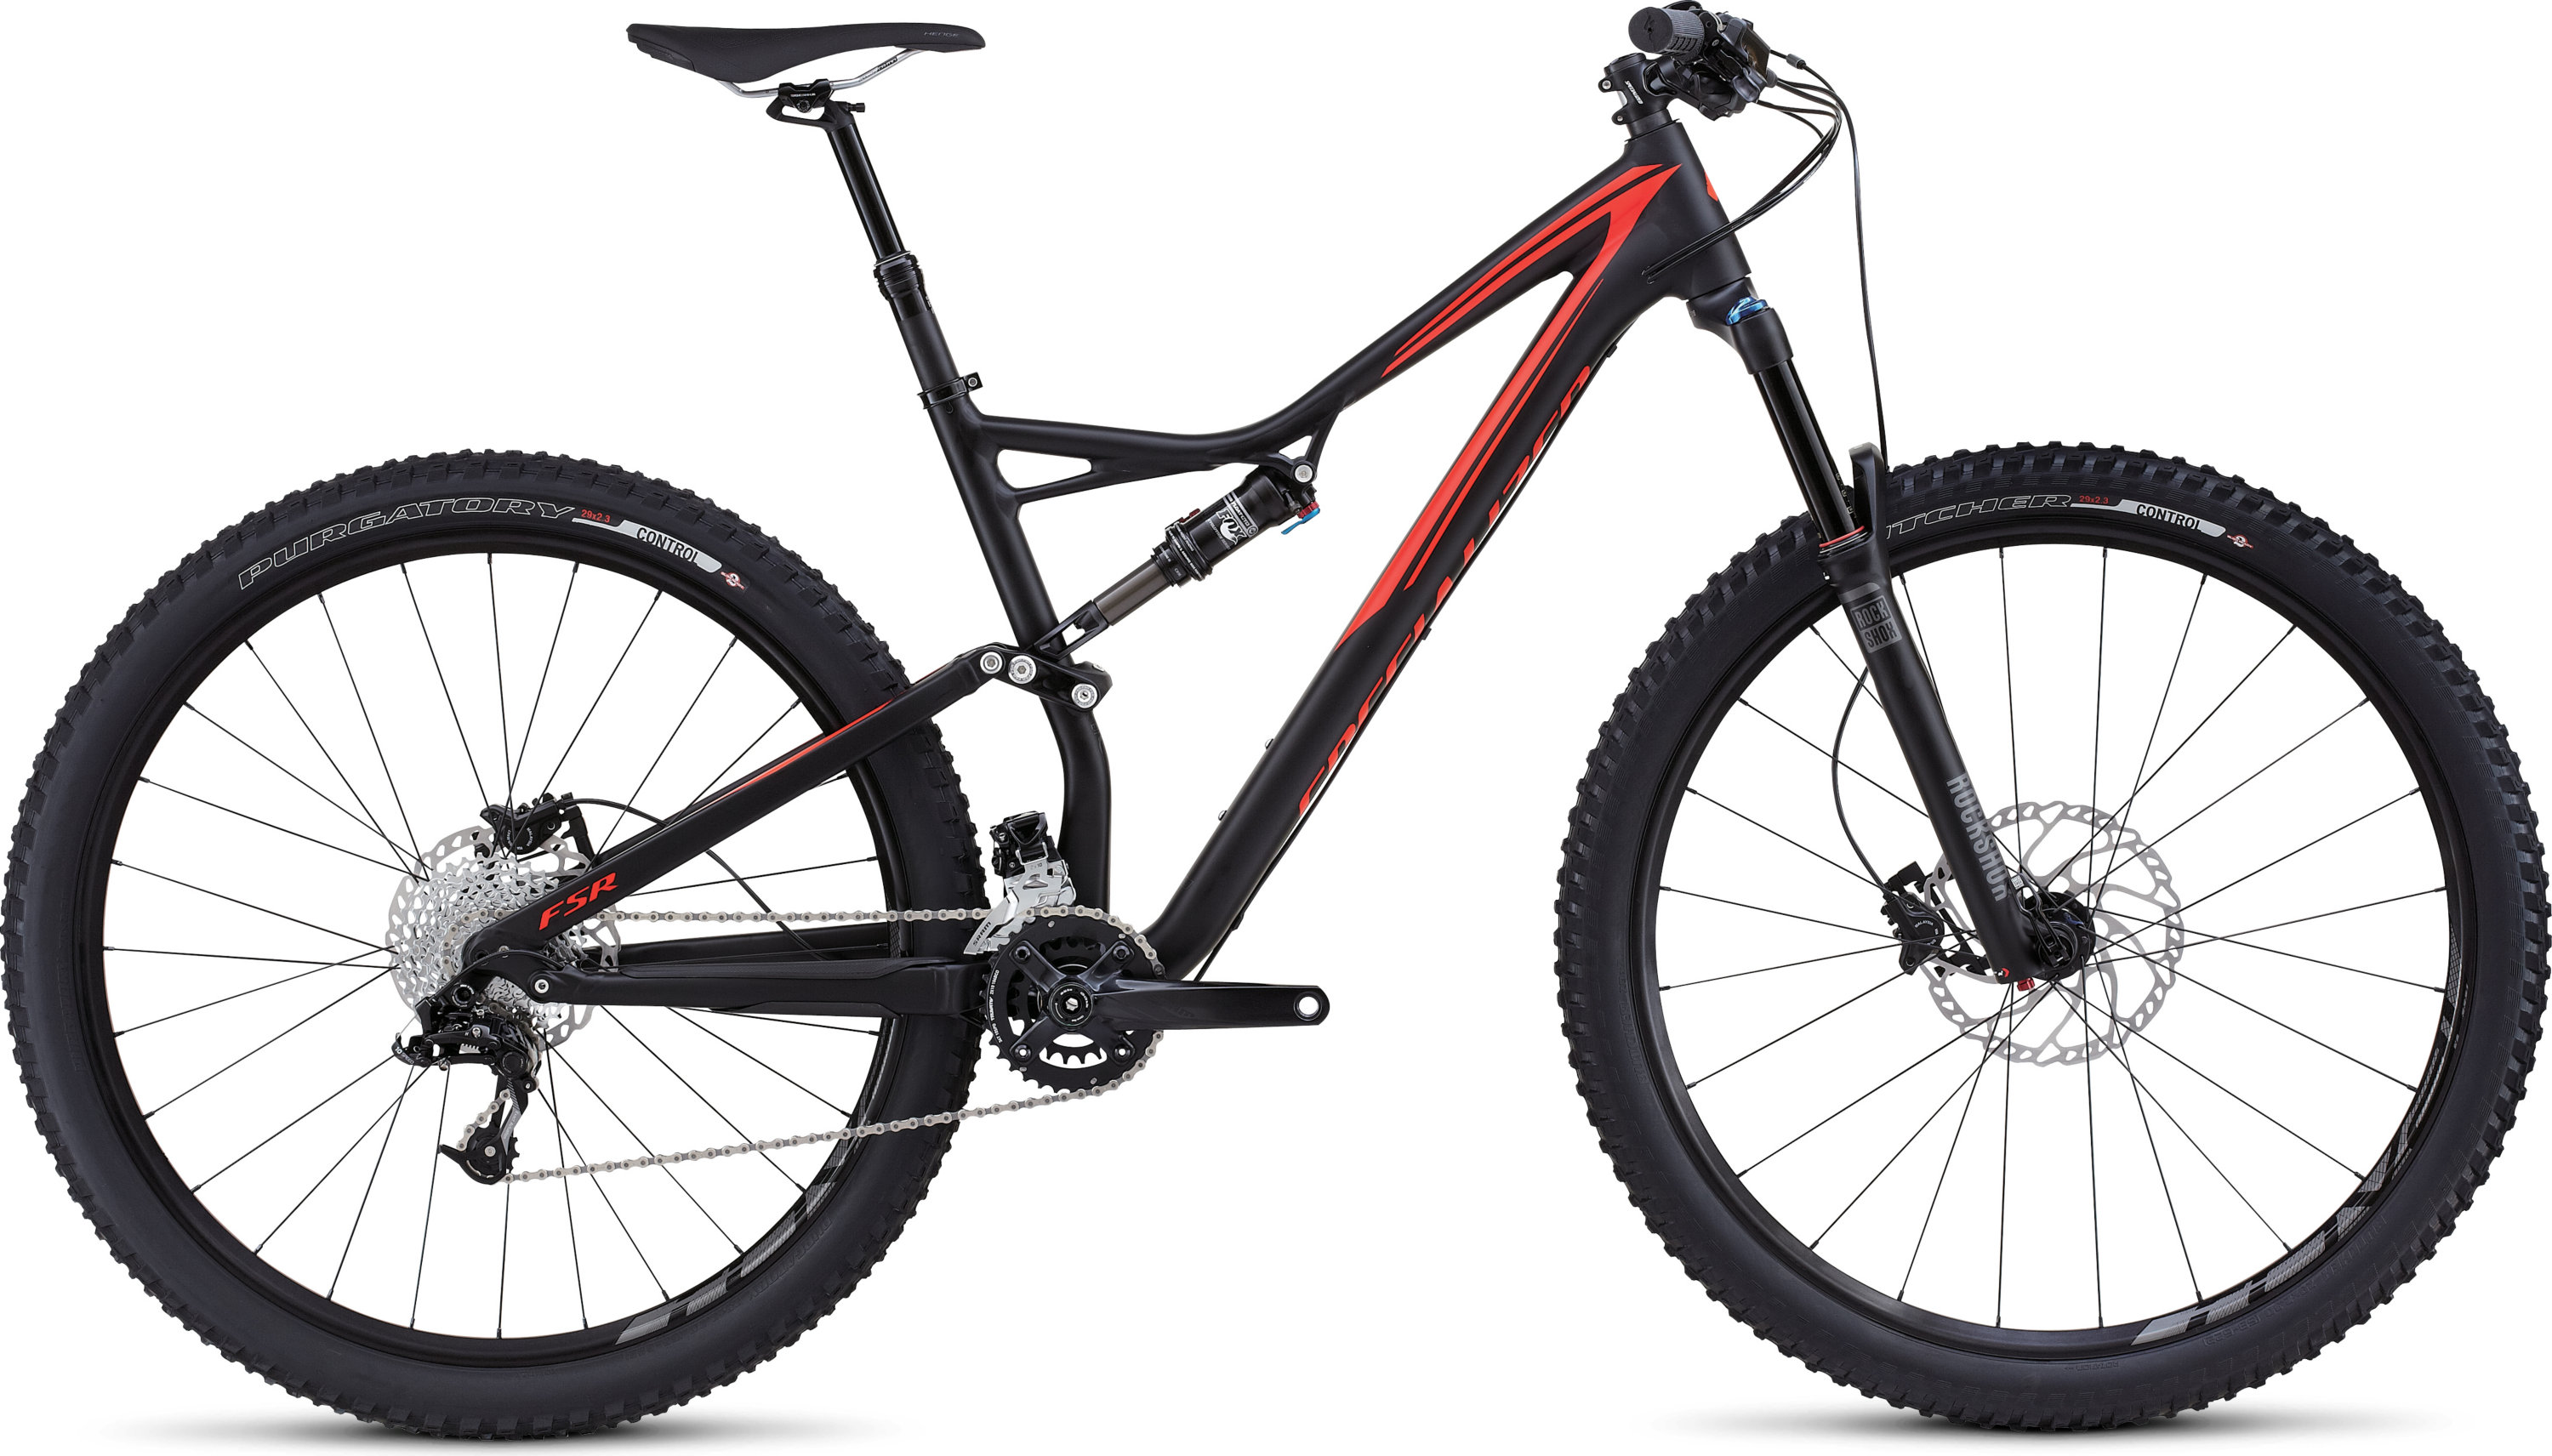 SPECIALIZED SJ FSR COMP 29 BLK/RKTRED S - schneider-sports